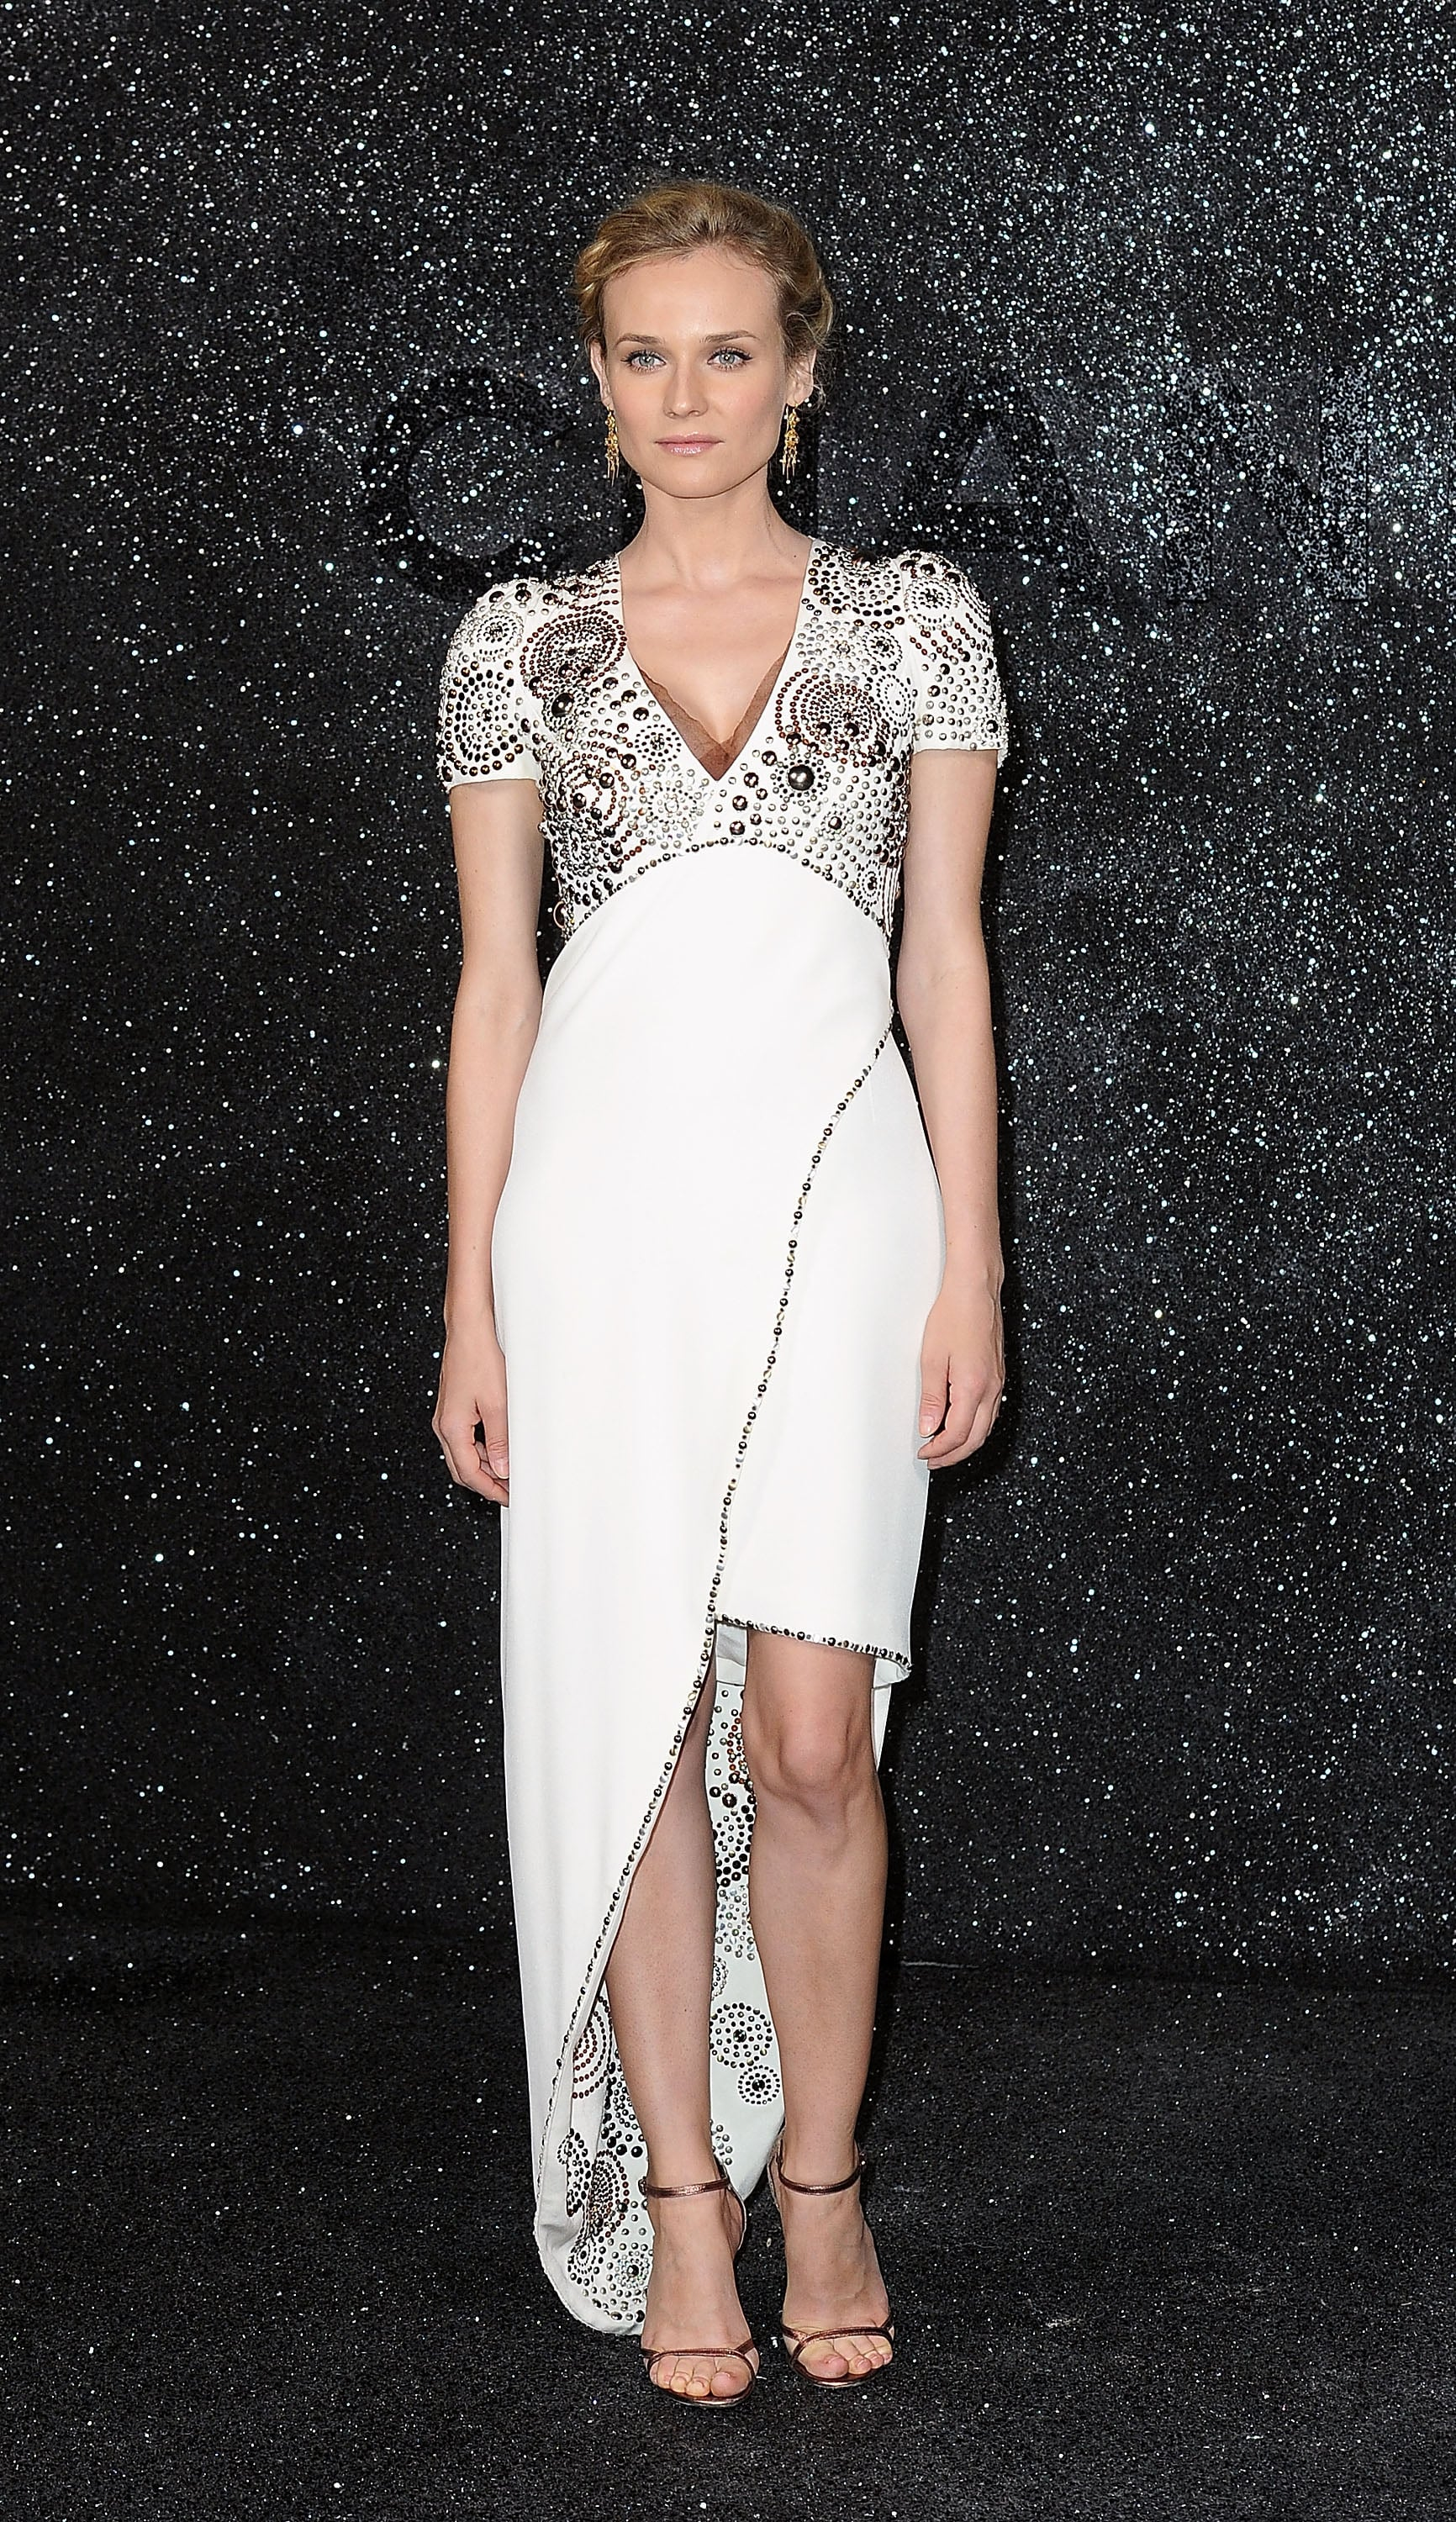 The actress dazzled in Chanel Couture at the design house's show during Paris Haute Couture Fashion Week in 2011.